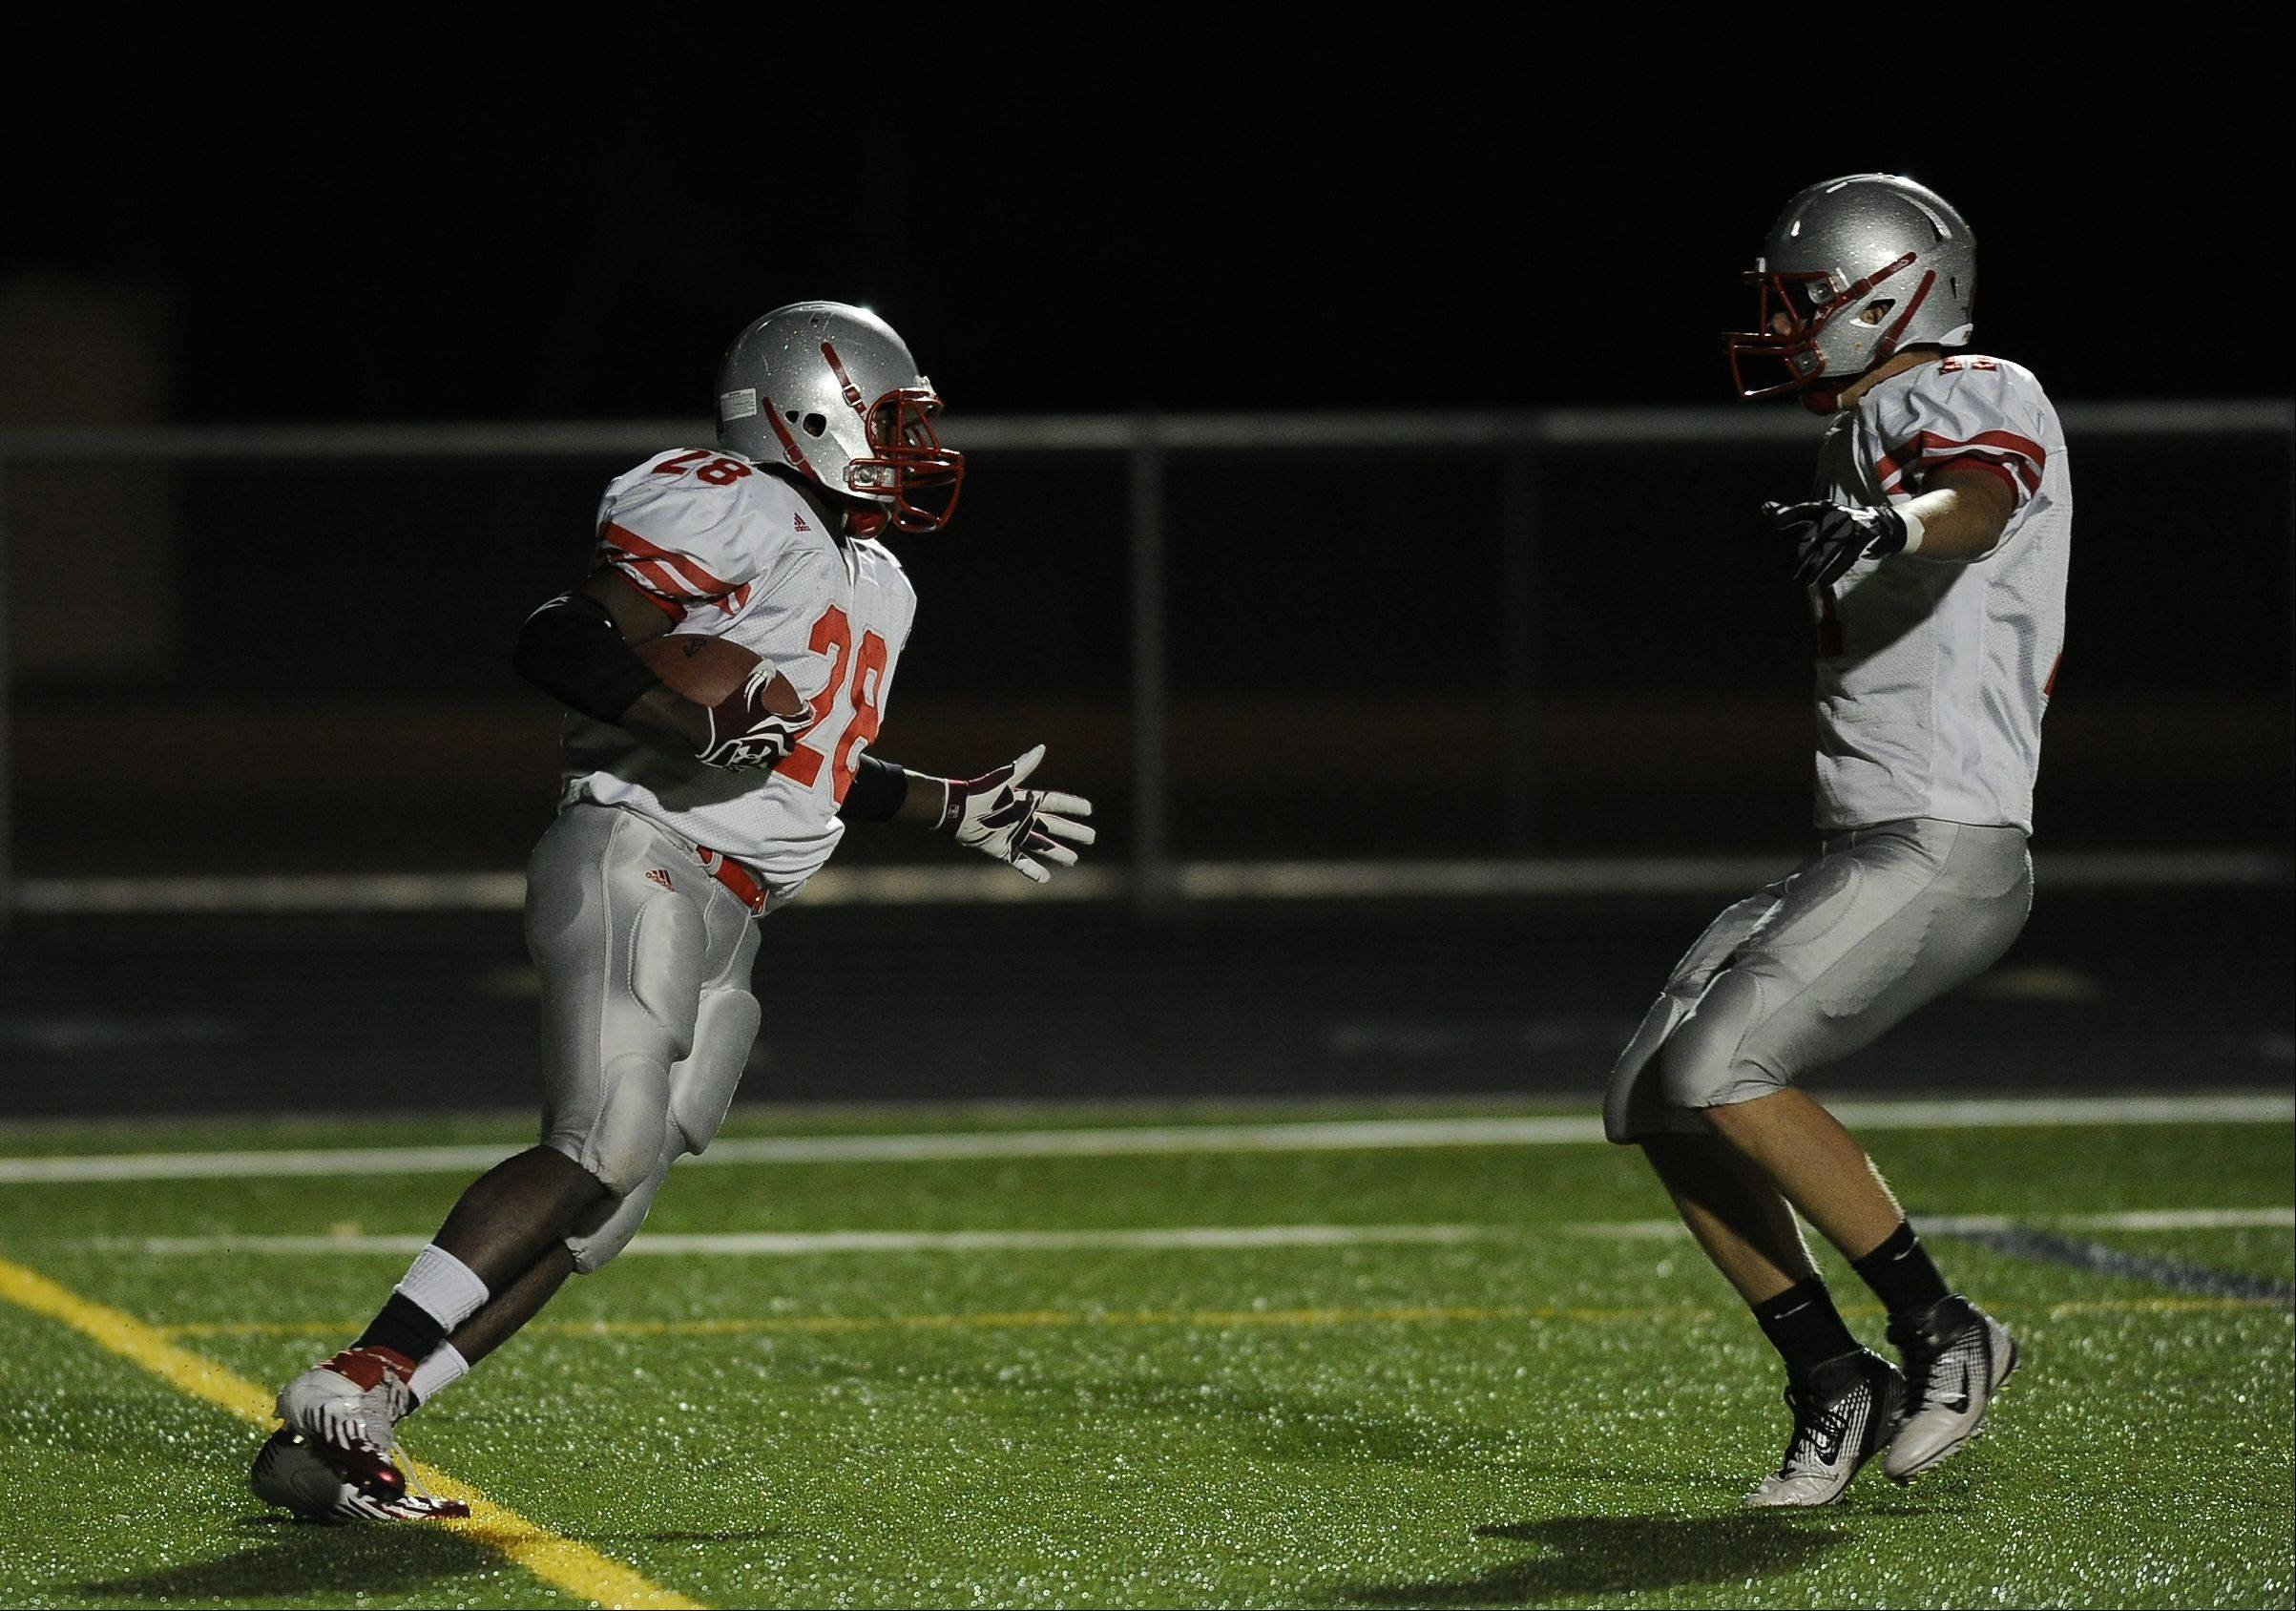 Week -7- Photos from the Conant vs. Palatine football game Friday, October 5th in Hoffman Estates